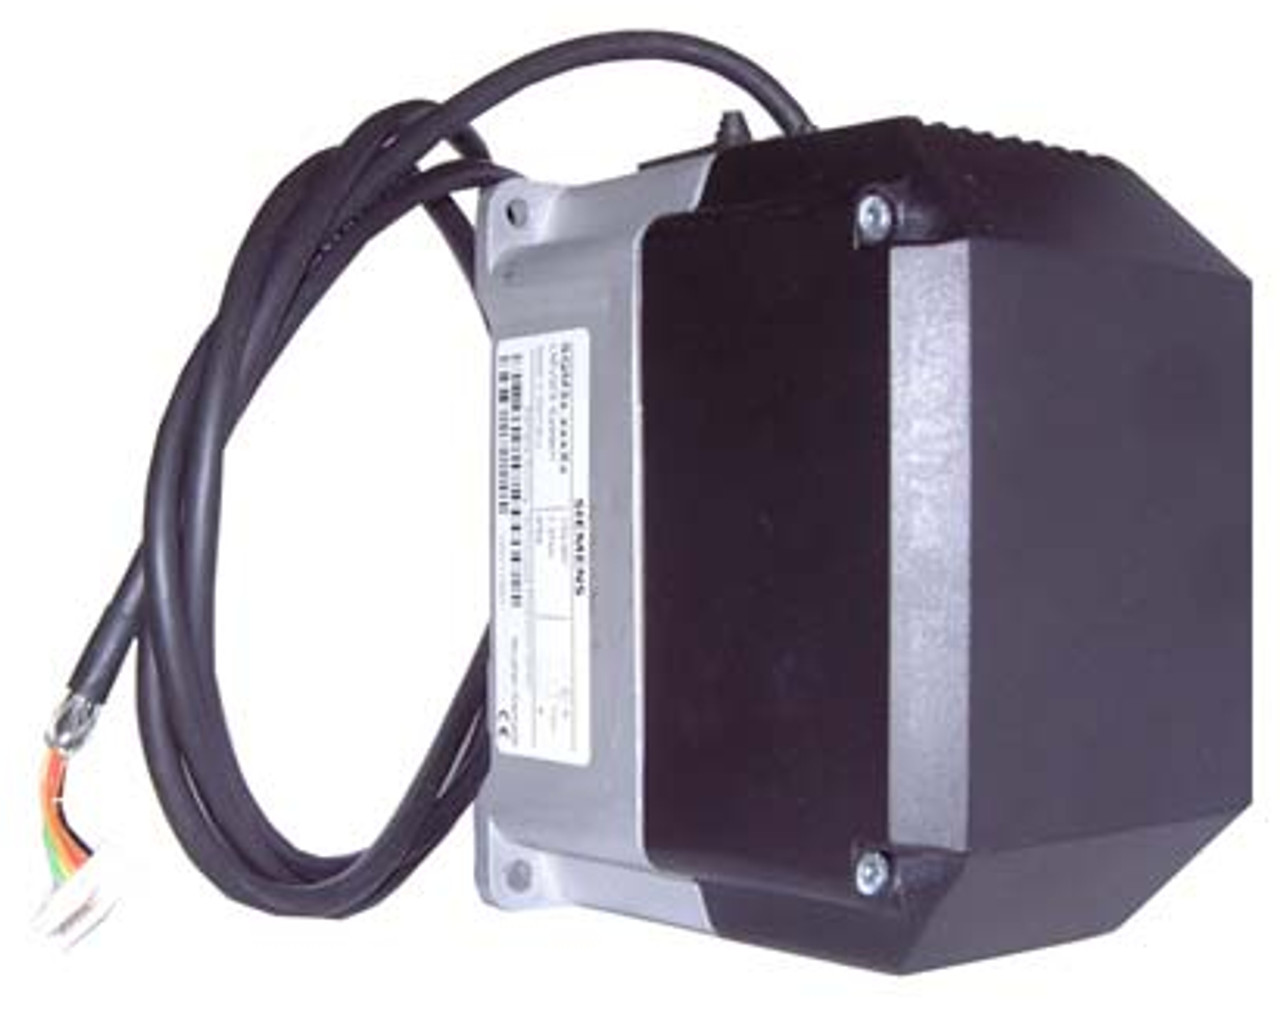 Siemens SQM33.410A9 Actuator, 1.2Nm, cable 1.5m for air dampers and control valves of oil and gas burners